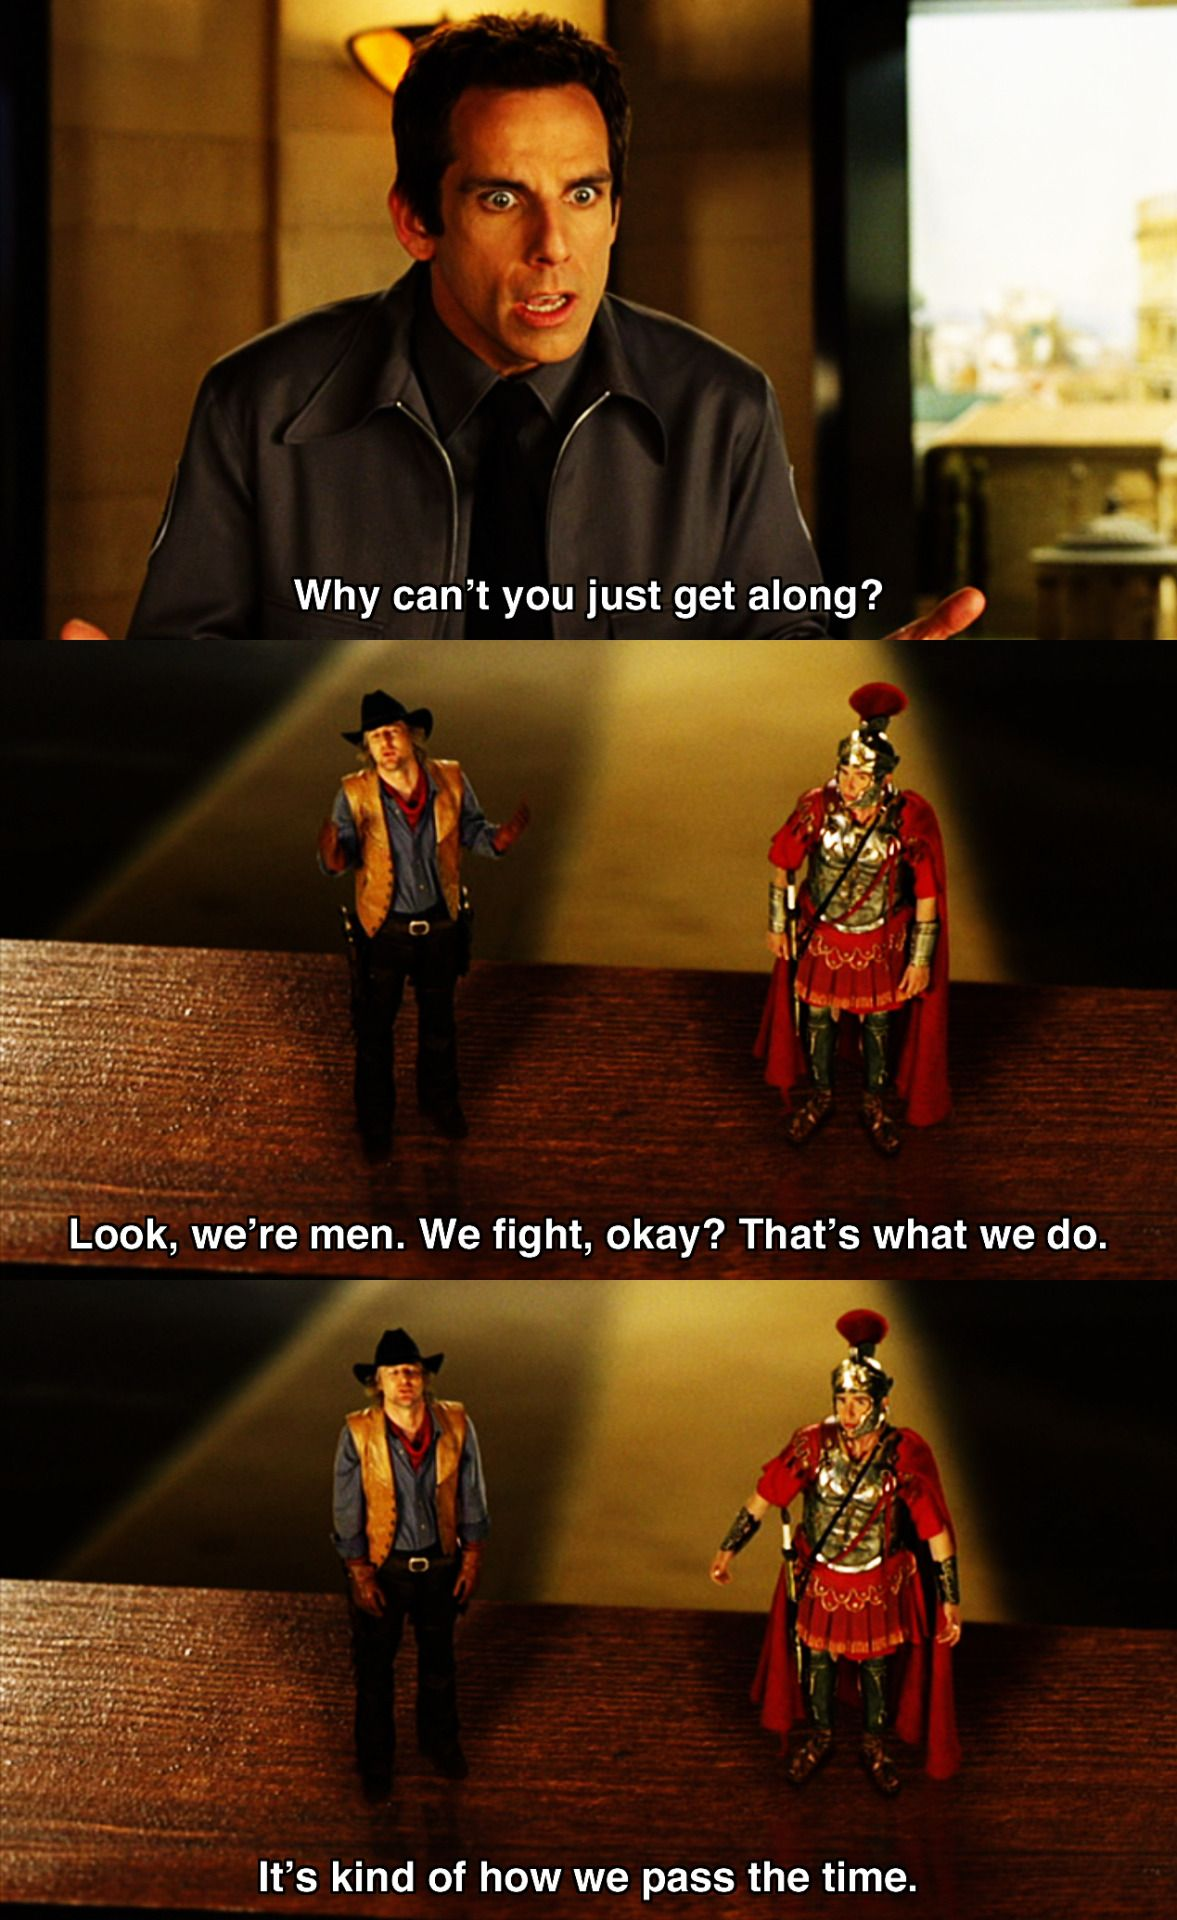 Funny movie quotations